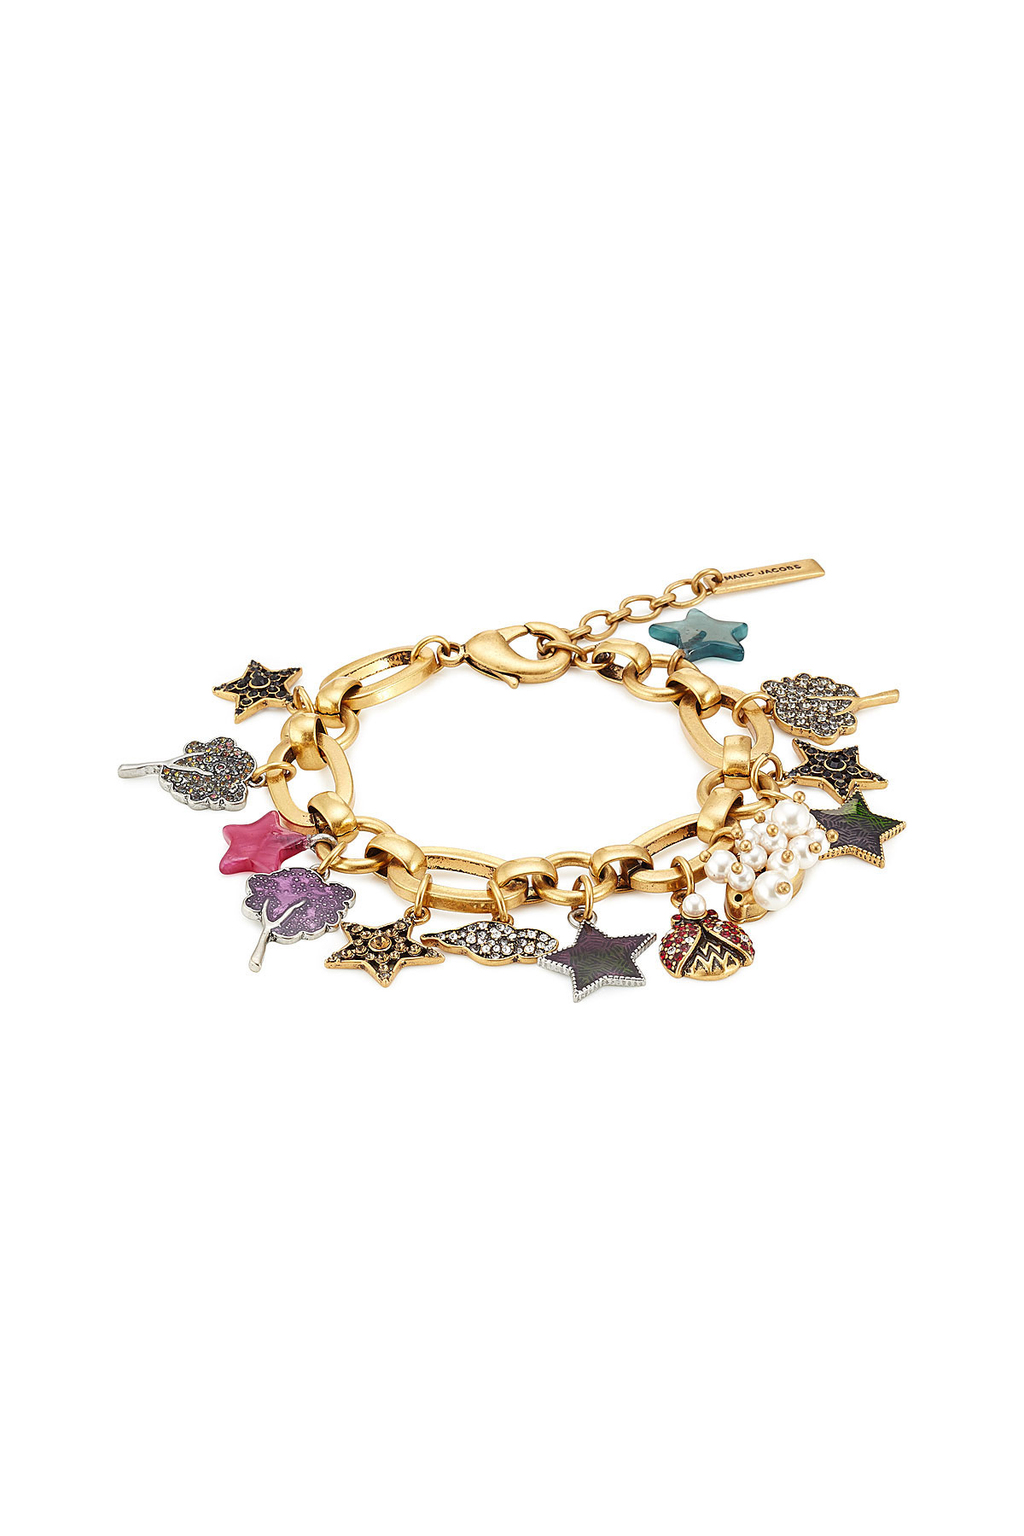 Embellished Charm Bracelet - predominant colour: gold; occasions: evening, occasion; style: charm; size: standard; material: chain/metal; finish: metallic; embellishment: jewels/stone; multicoloured: multicoloured; season: a/w 2016; wardrobe: event